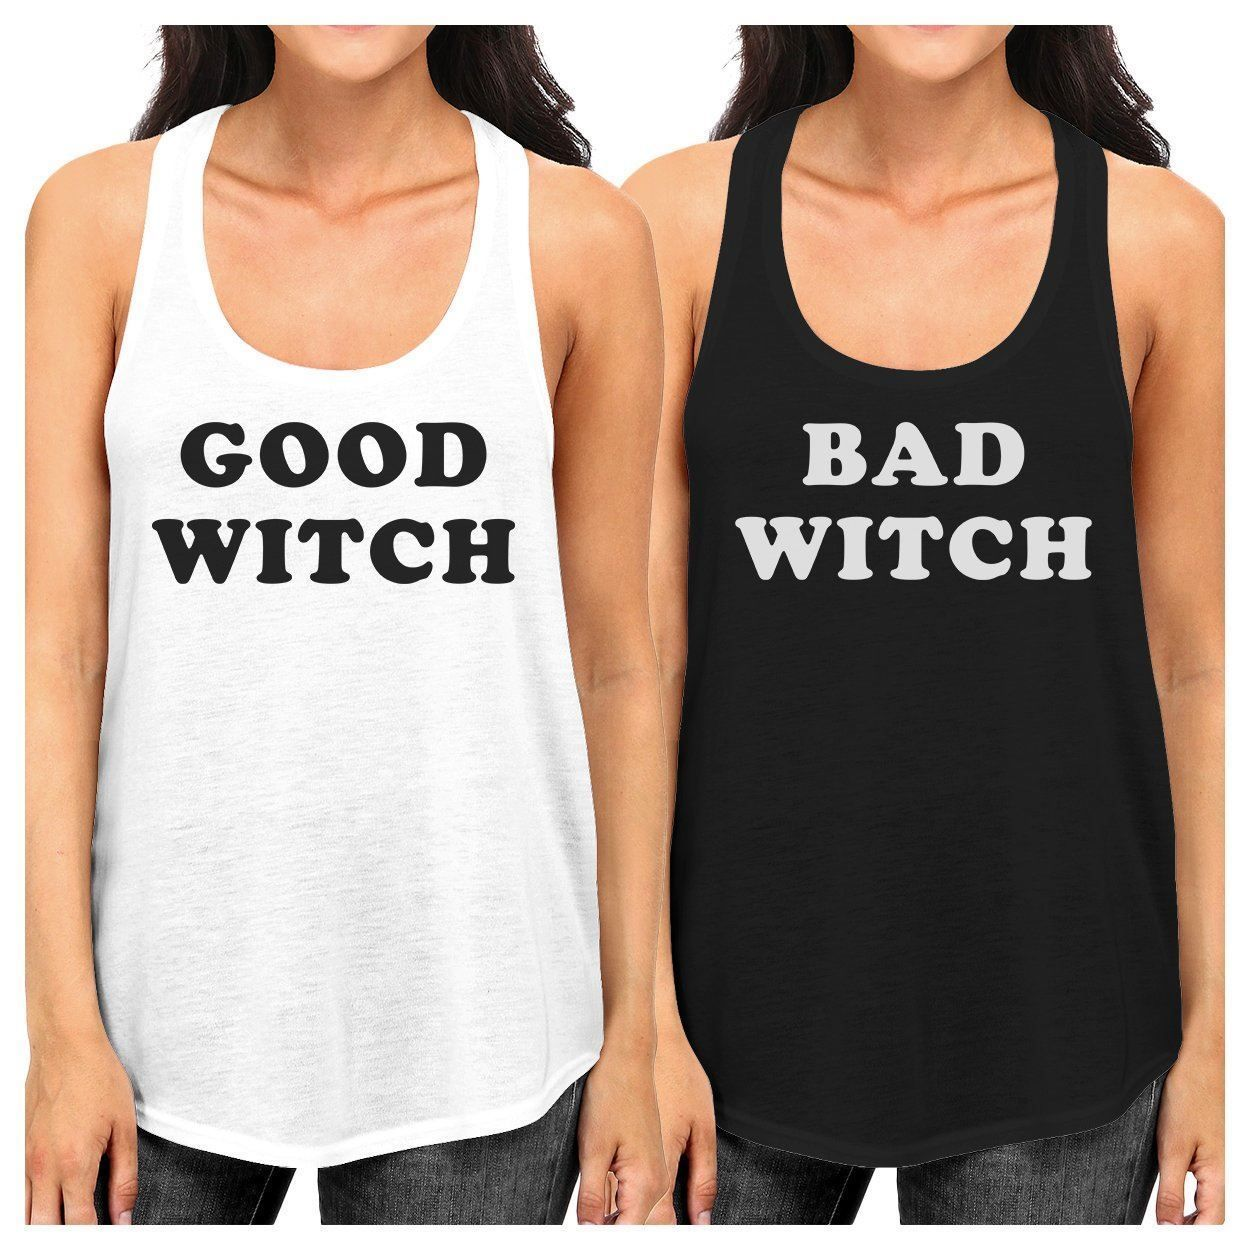 Good Witch Bad Witch BFF Matching White and Black Tank Tops